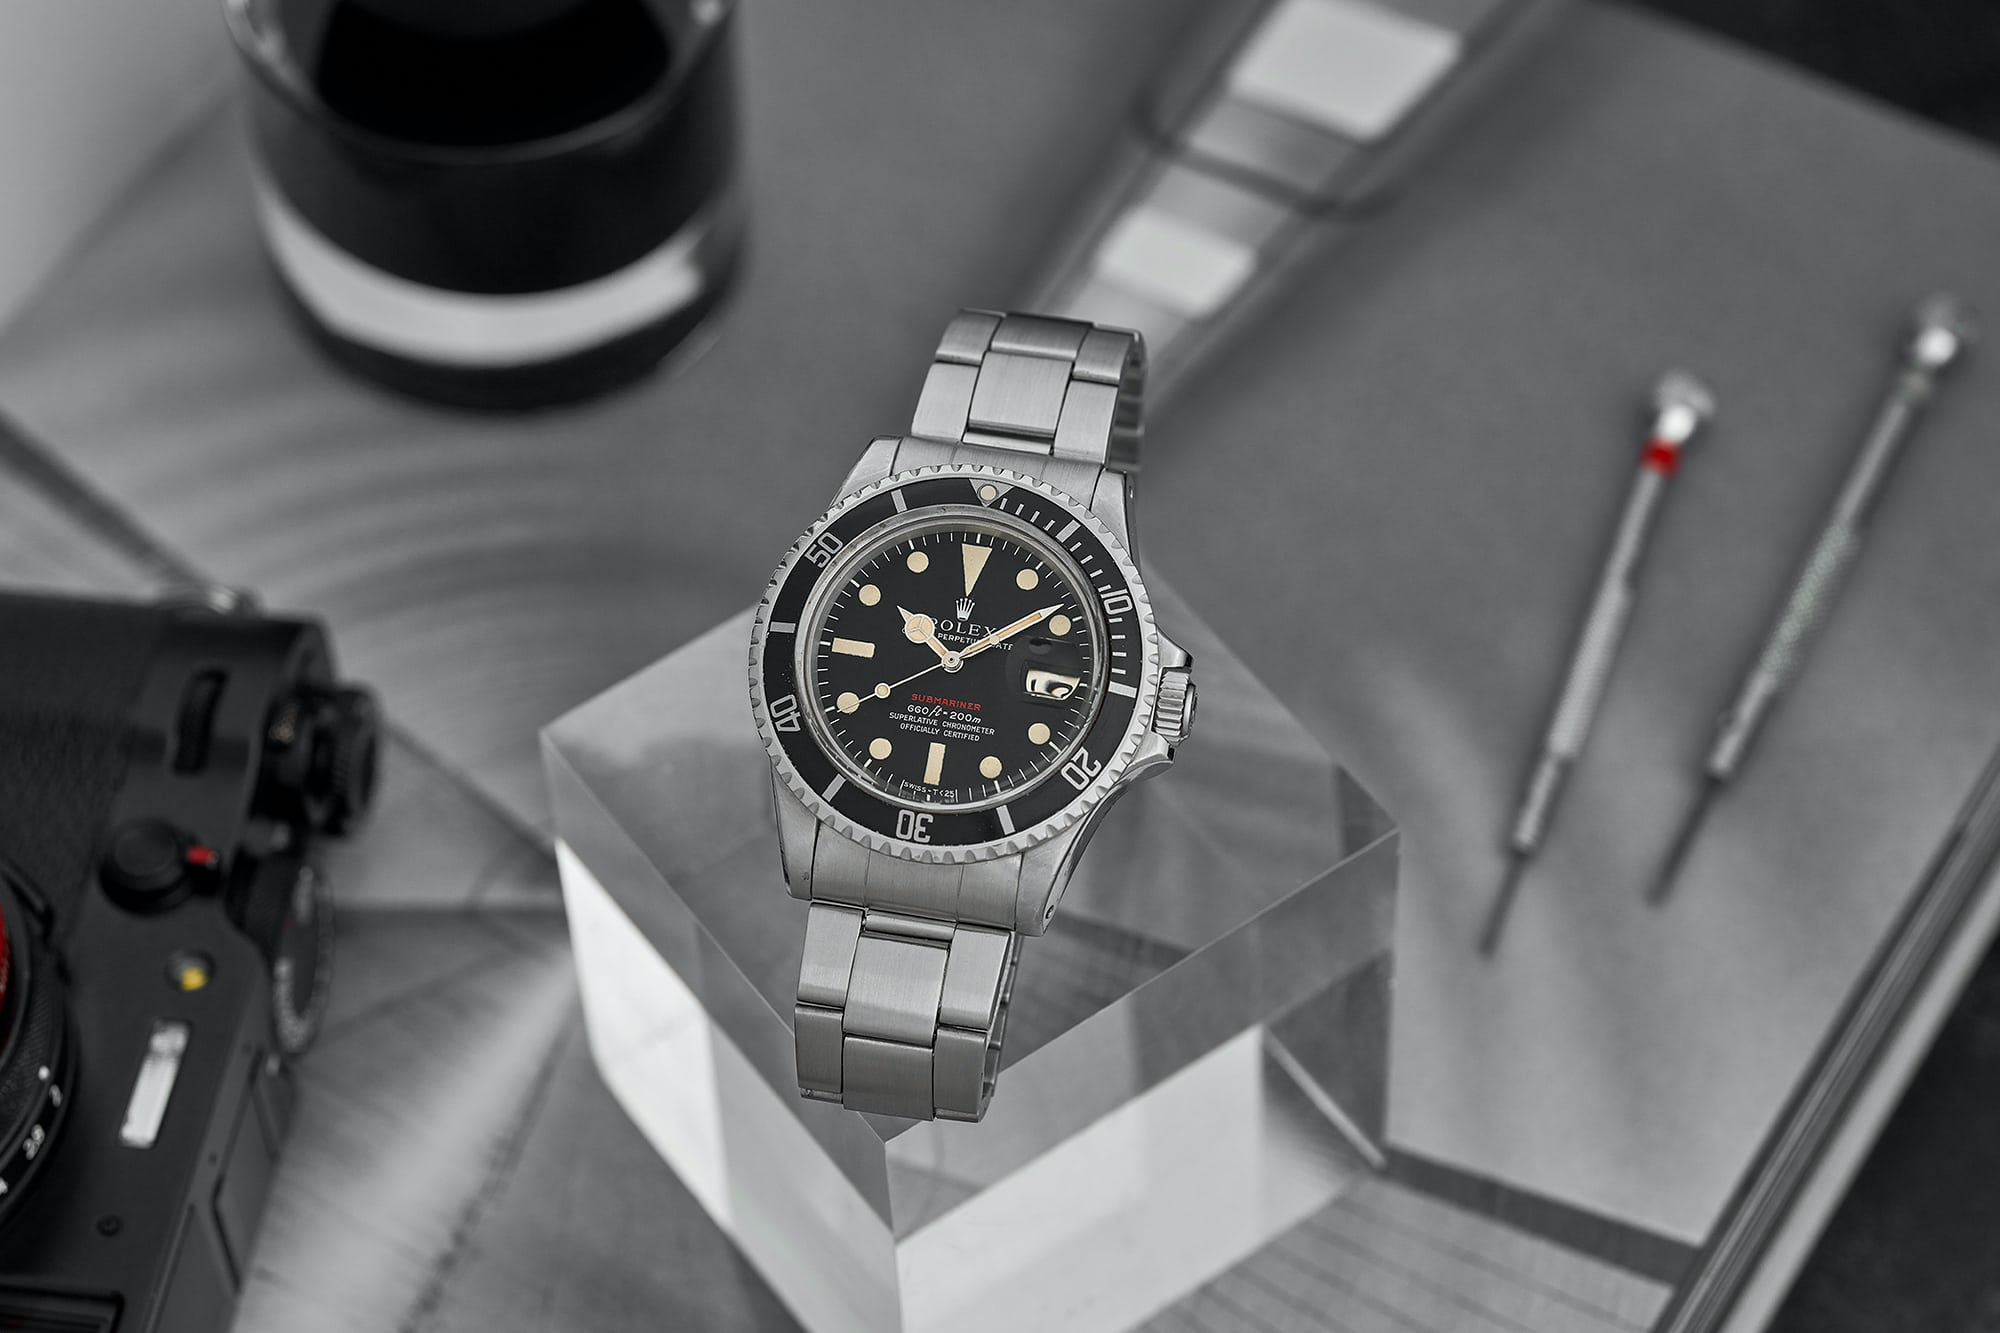 Vintage Watches: A 1972 Rolex 'Red' Submariner With Full Set, A 1956 Omega Constellation In 14k Yellow Gold, And A 1972 Breitling 'Long Playing' Top Time Chronograph